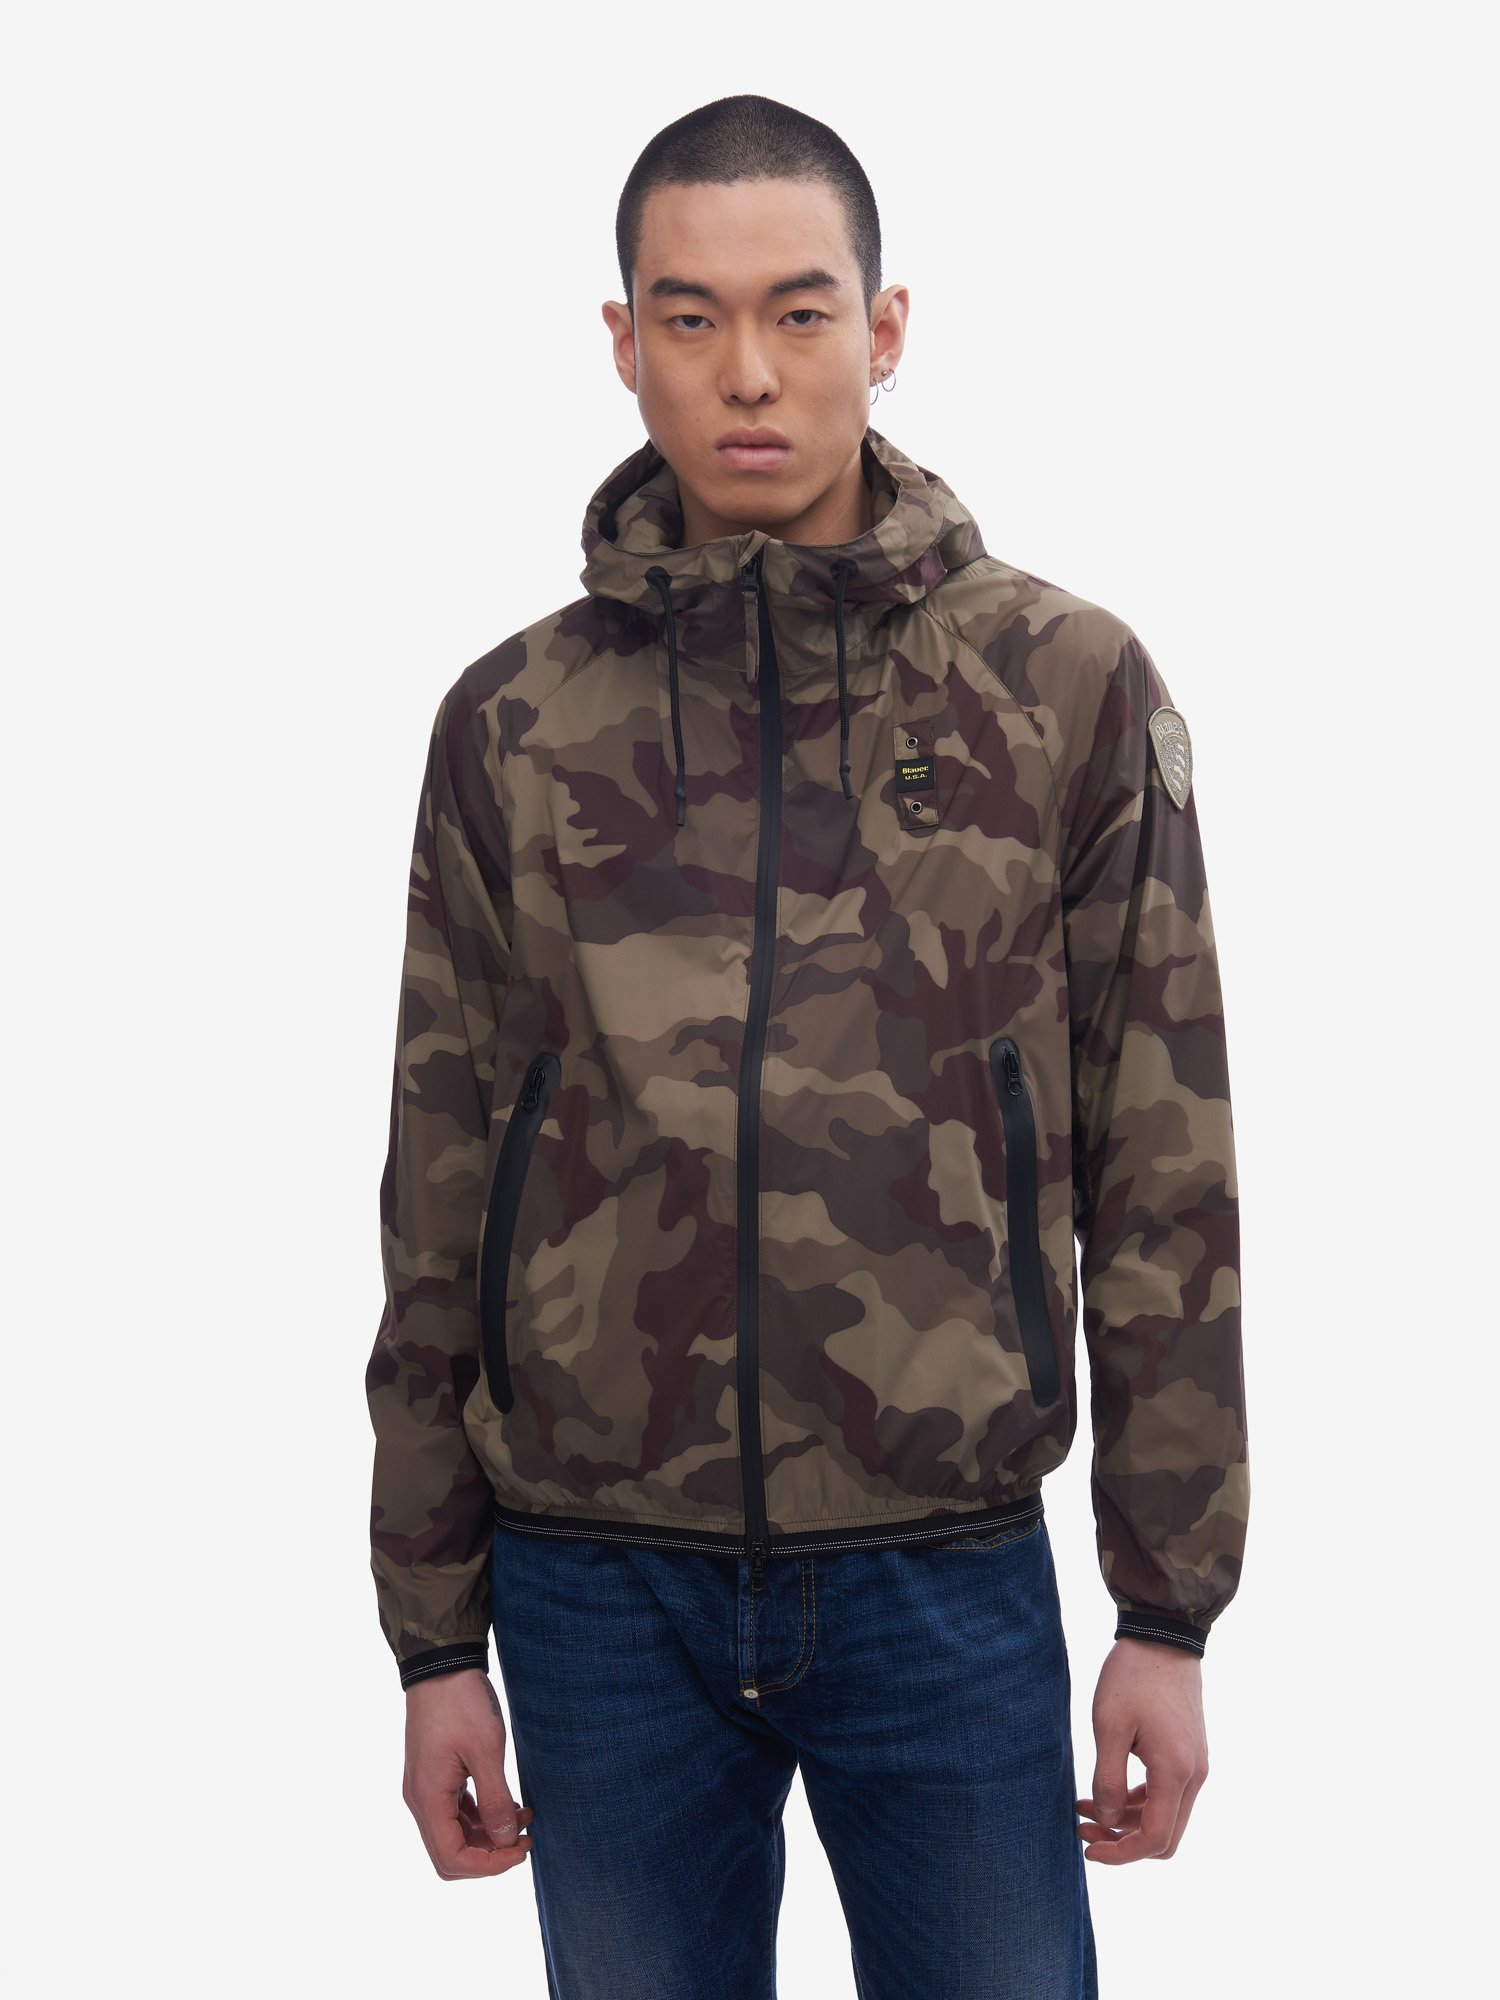 SIMMONS CAMOUFLAGE JACKET WITH HOOD - Blauer